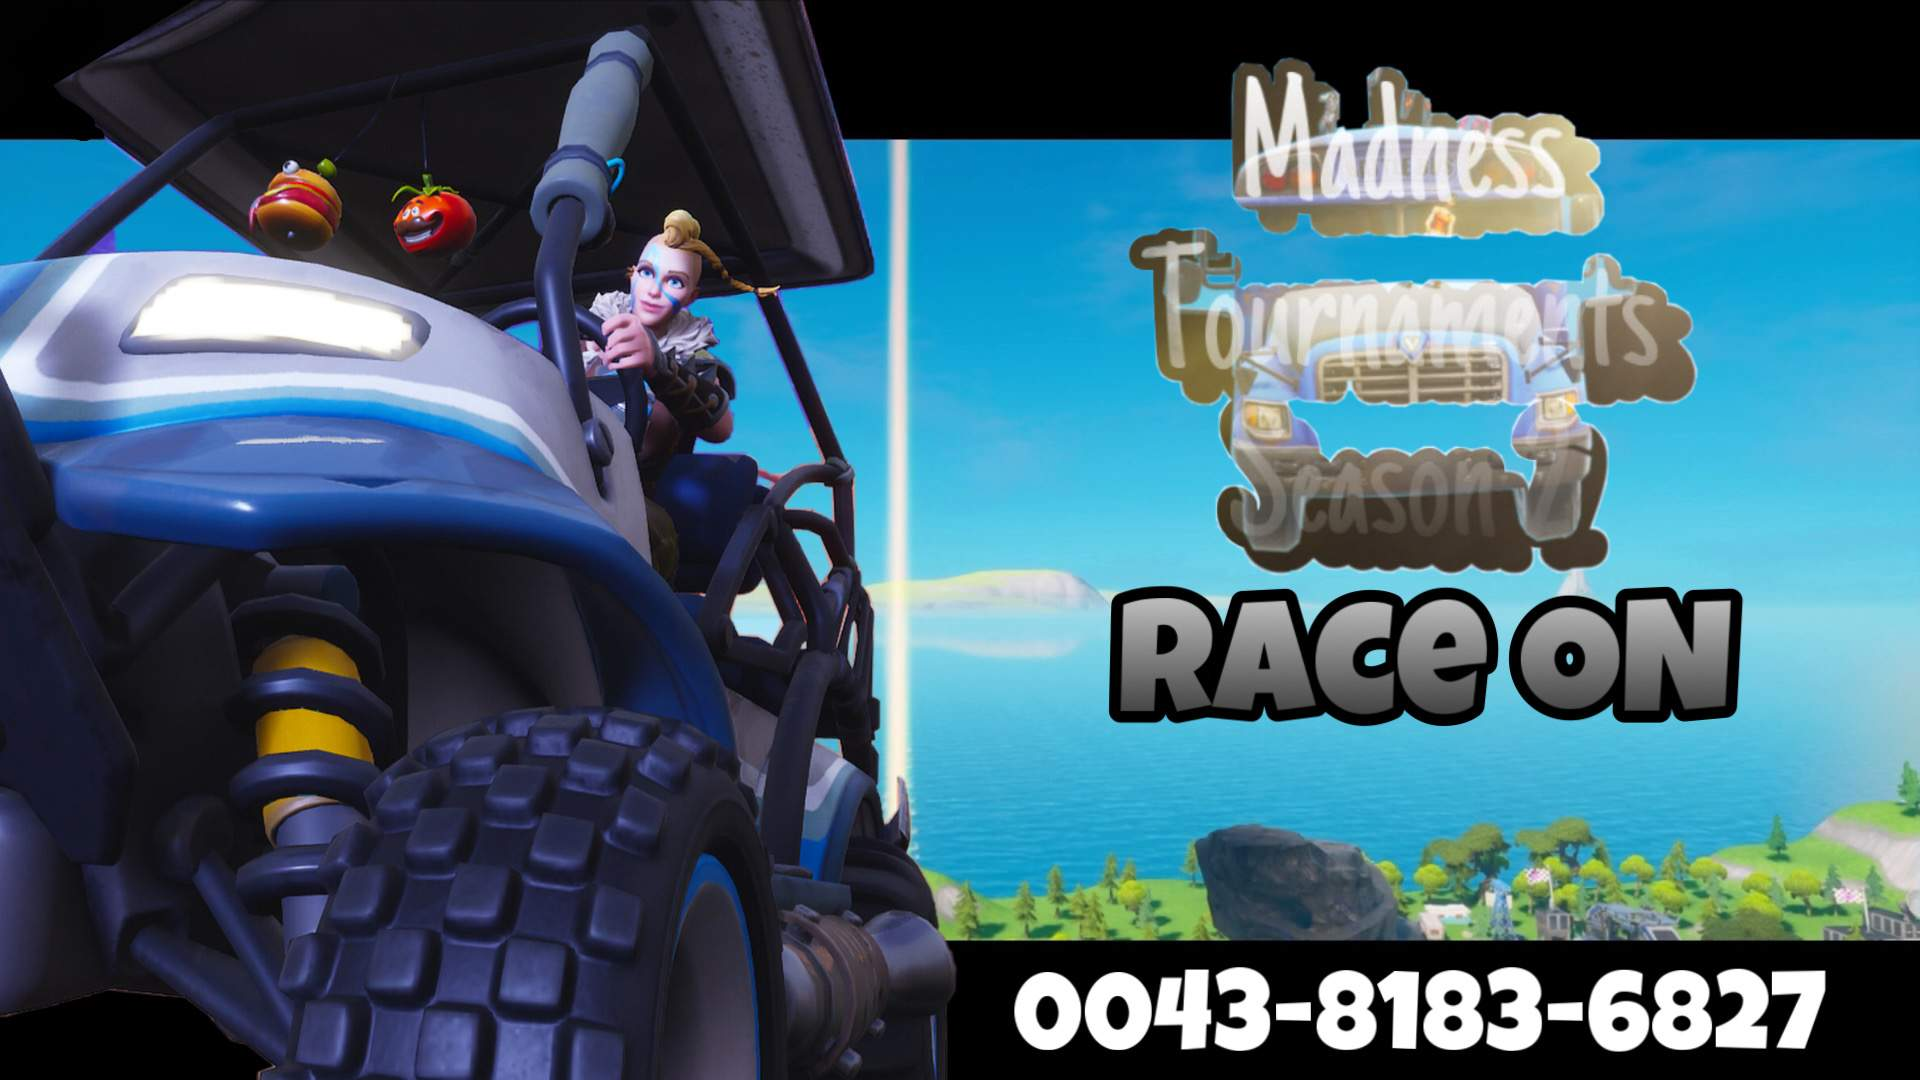 MADNESS TOURNAMENTS S2 RACE ON